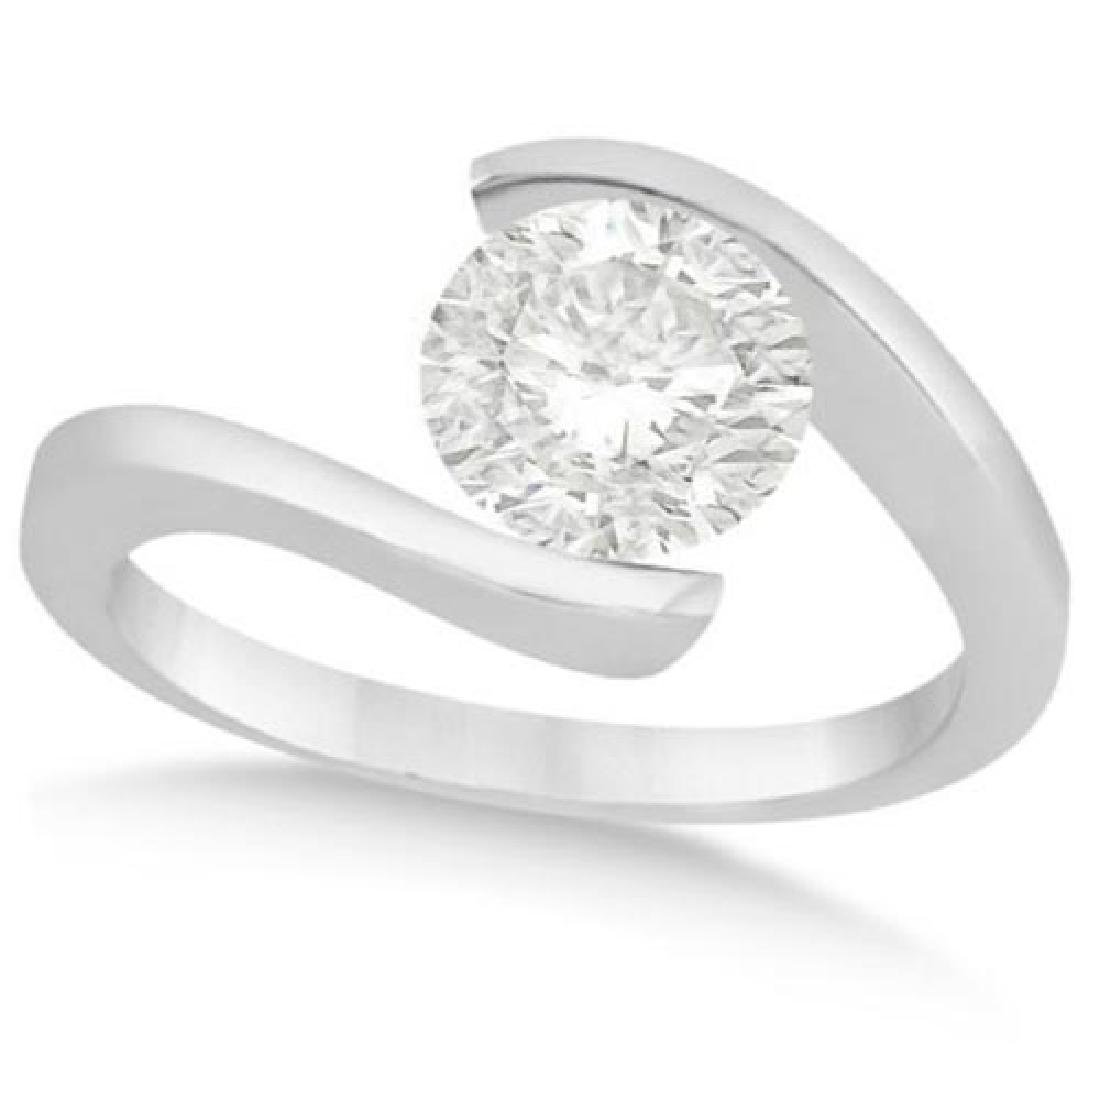 Tension Set Solitaire Diamond Engagement Ring 14k White